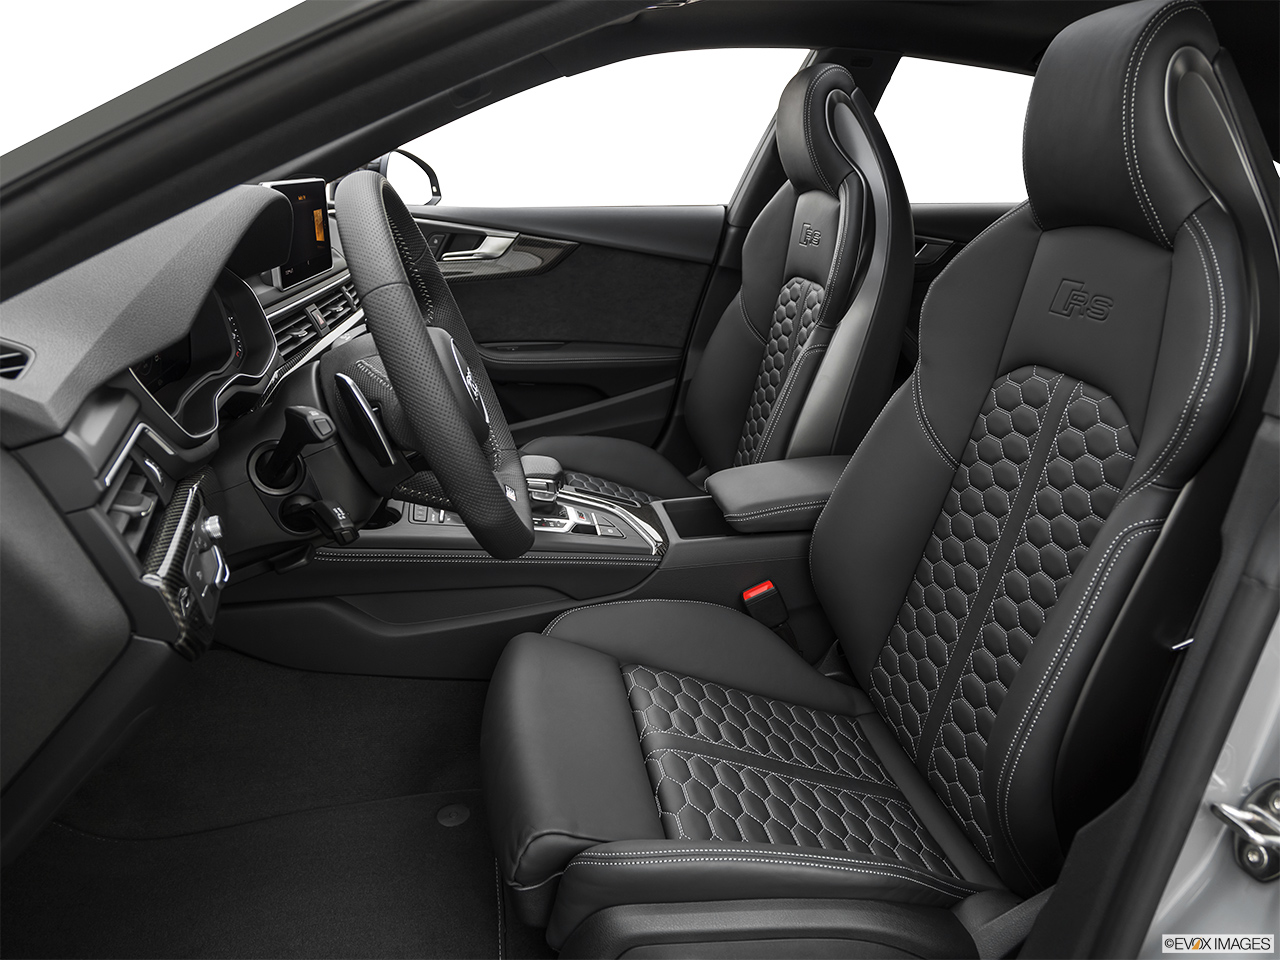 2019 Audi RS 5 Sportback 2.9 TFSI Front seats from Drivers Side.